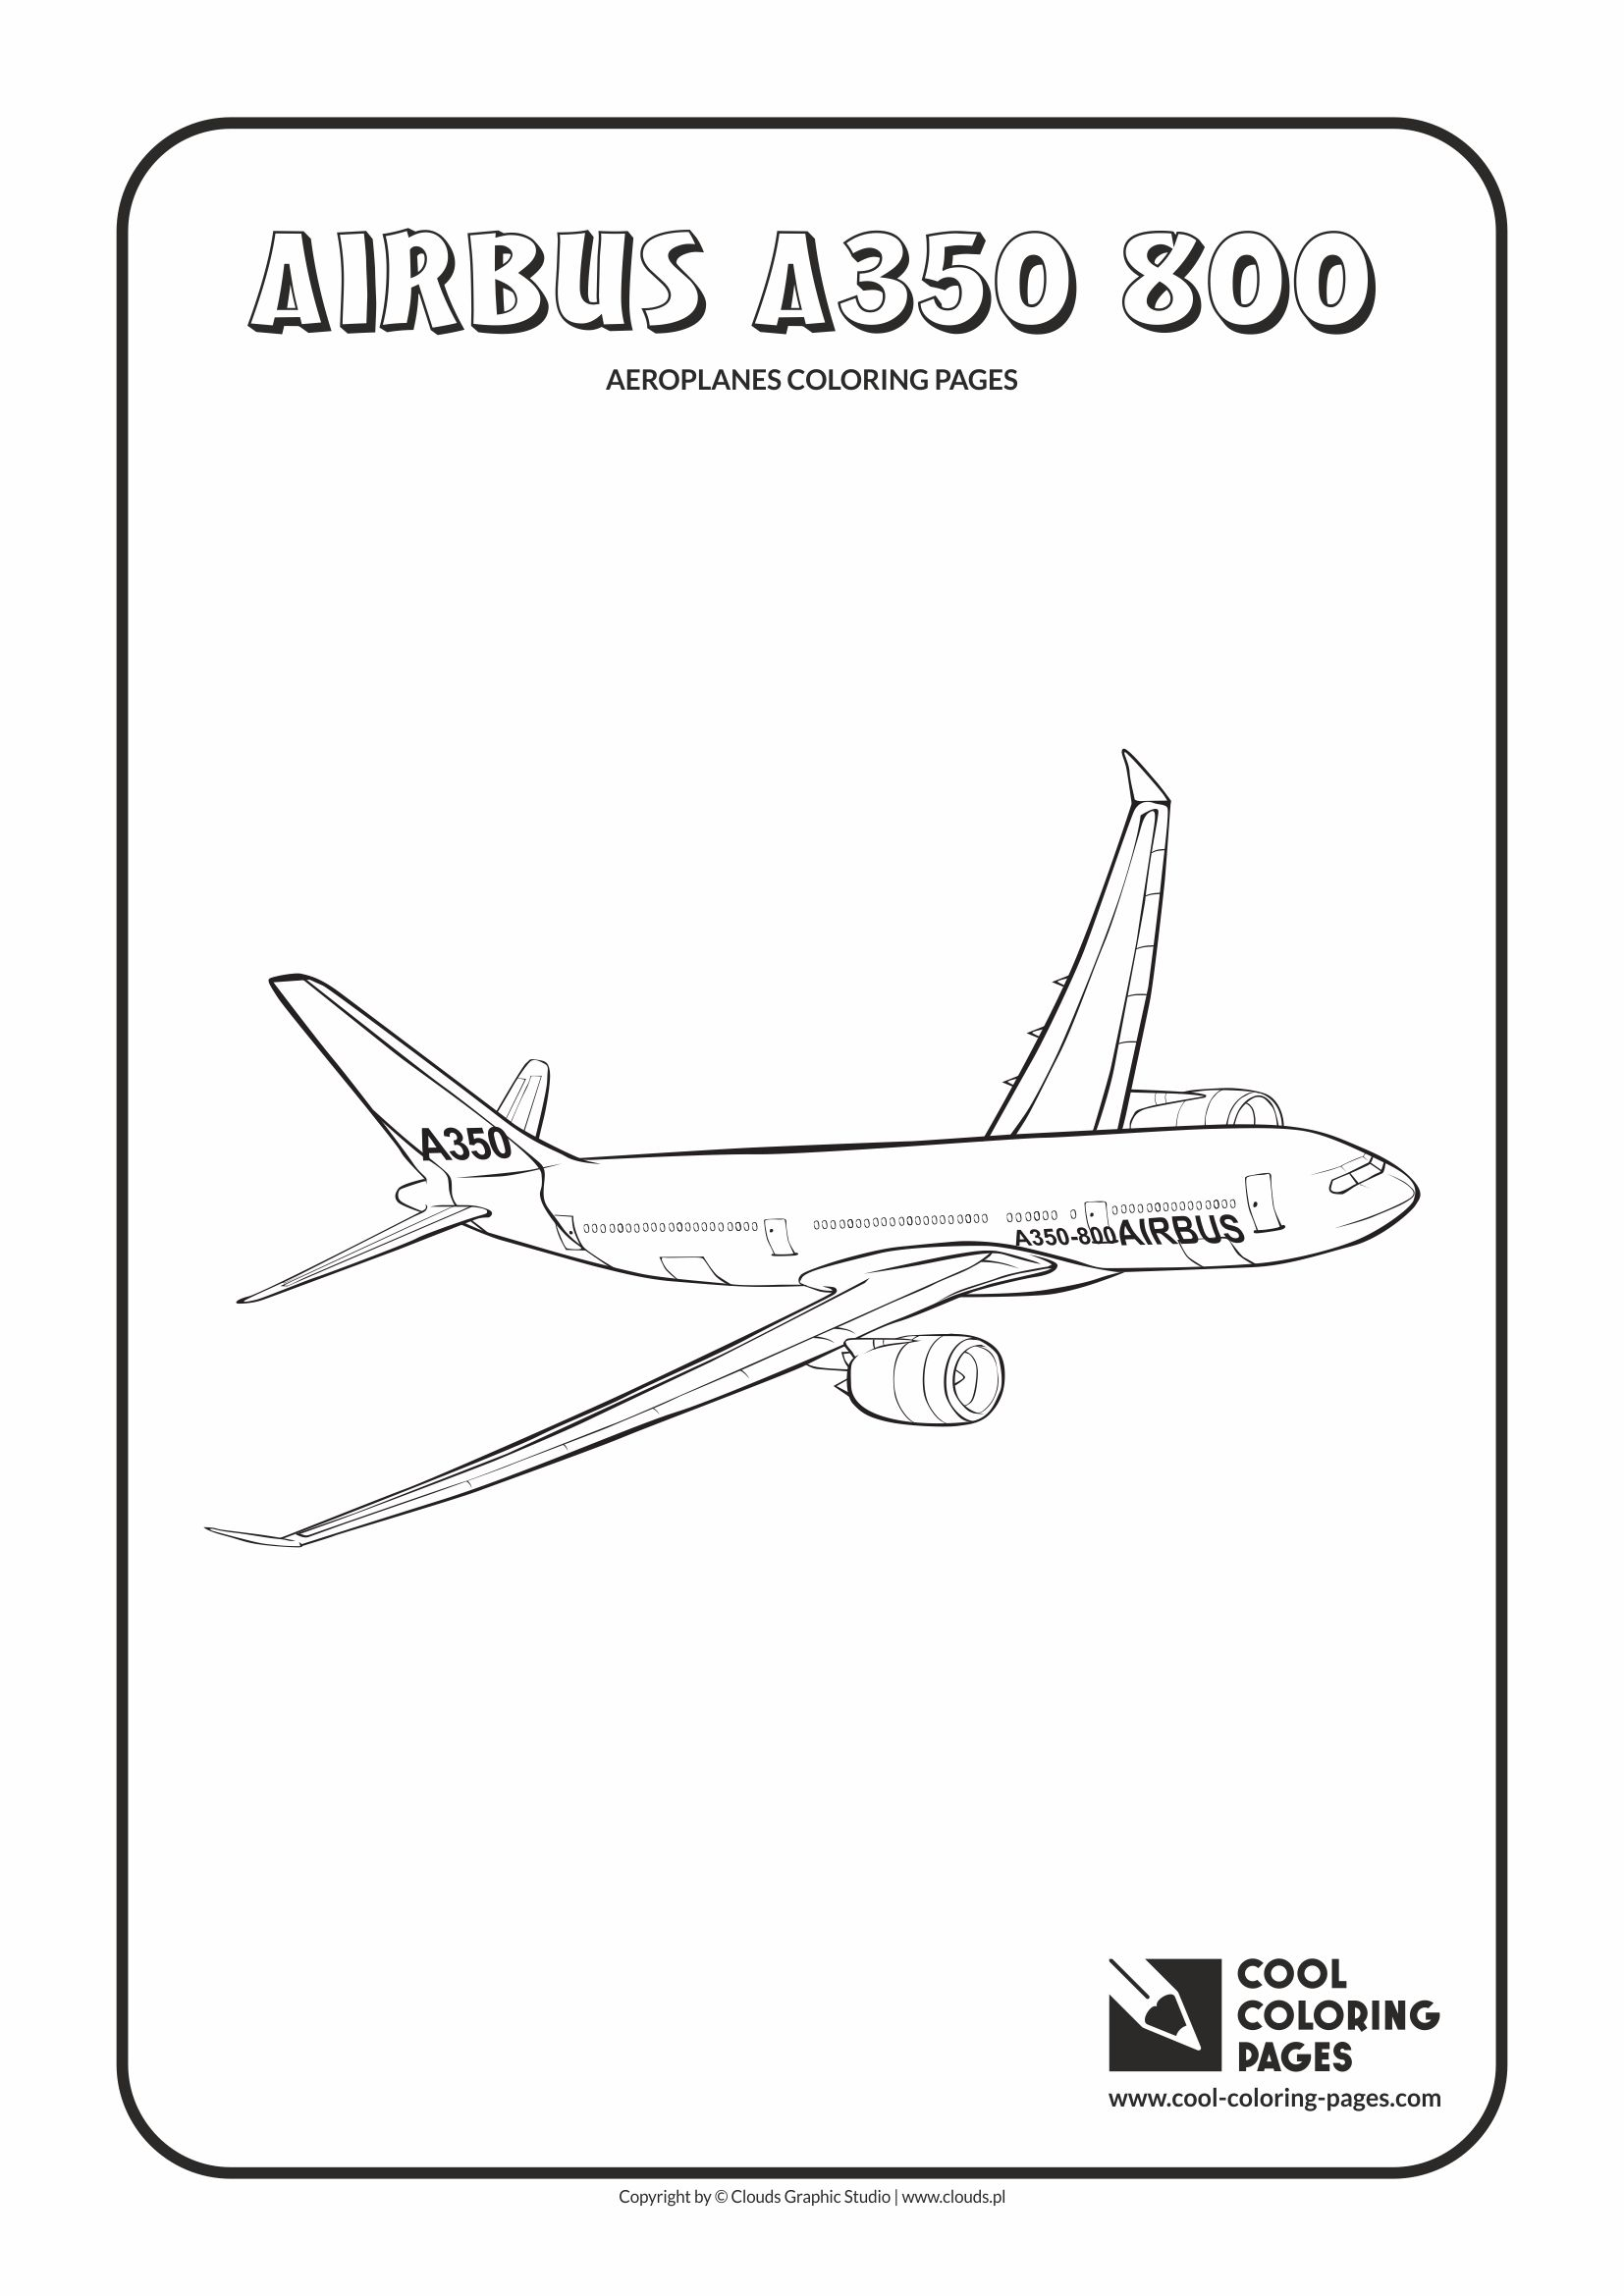 Cool Coloring Pages Airbus A350 800 Coloring Page